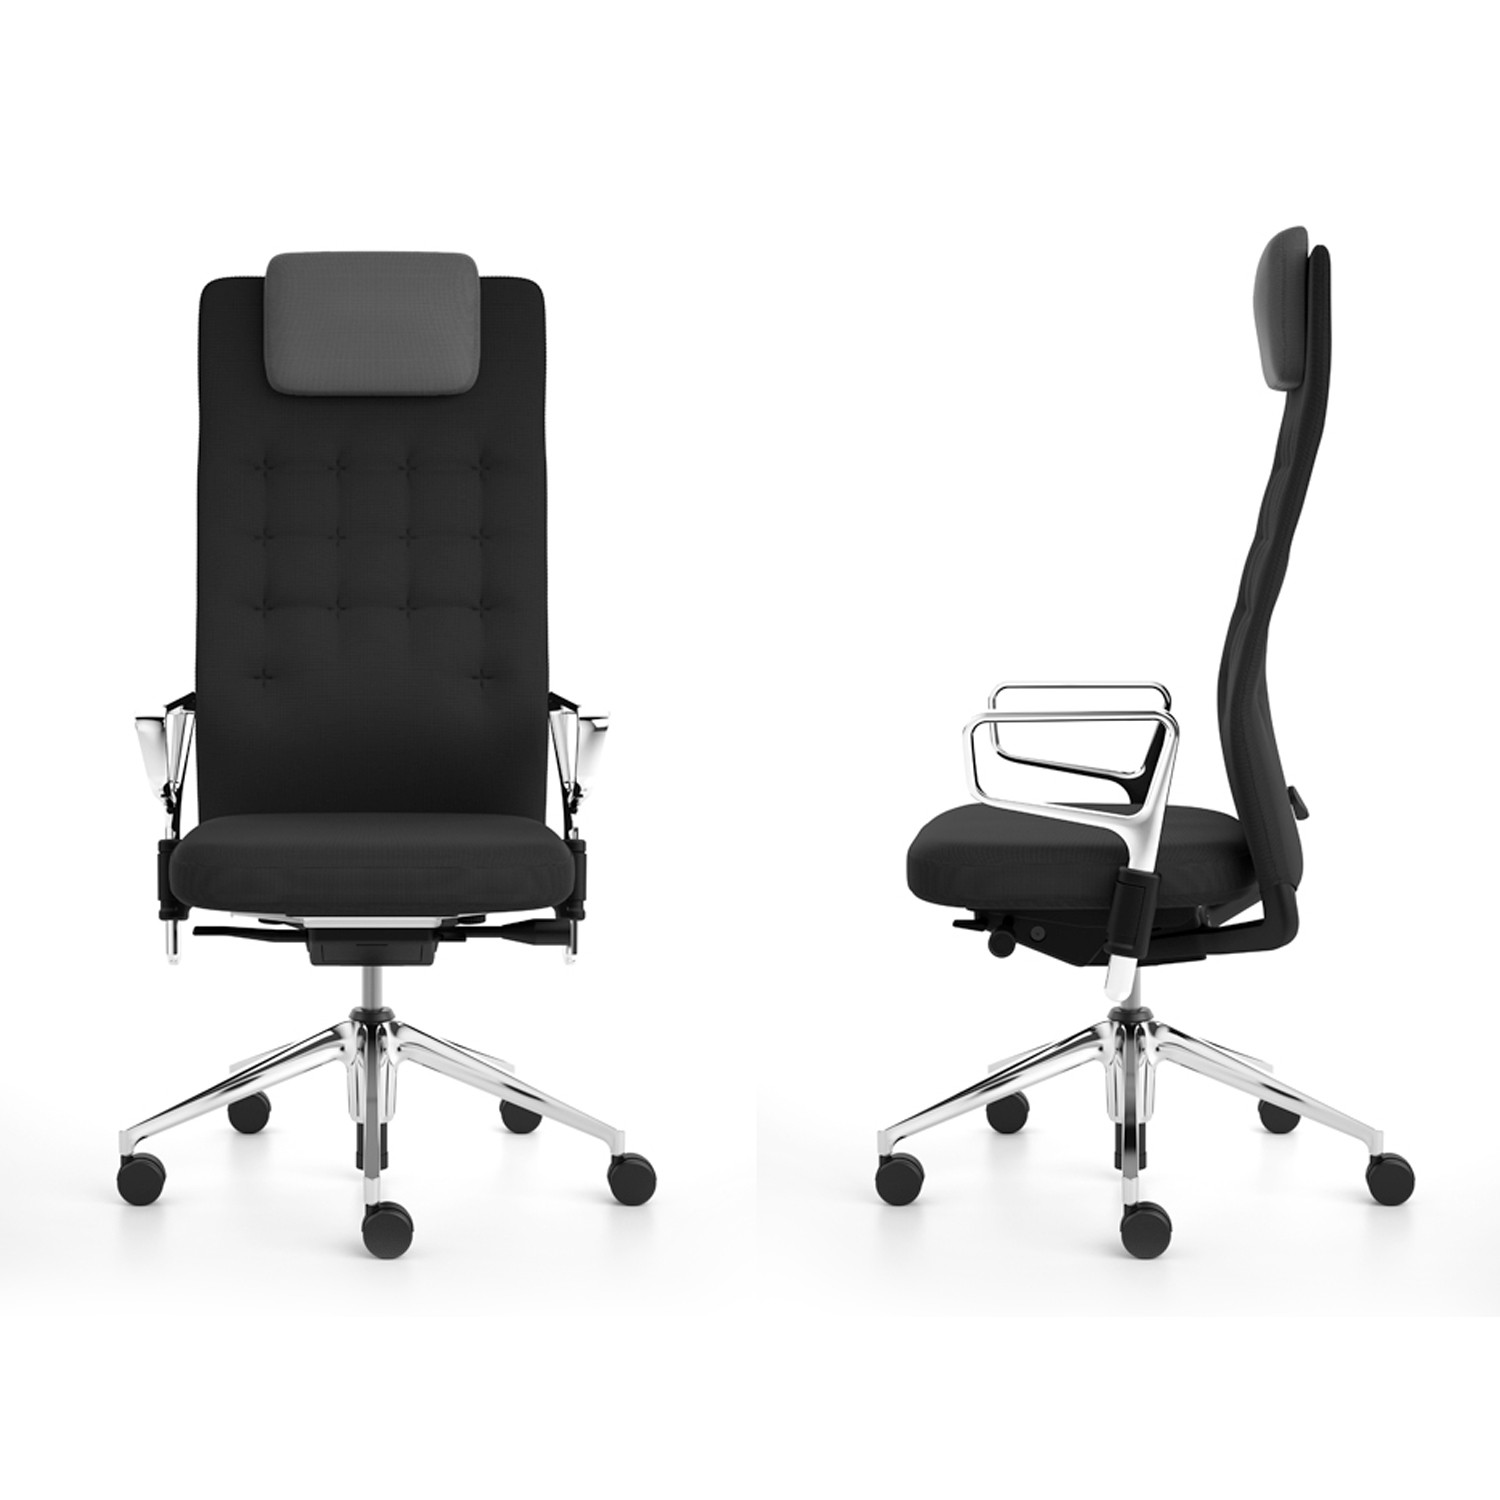 ID Trim L Executive Office Chair